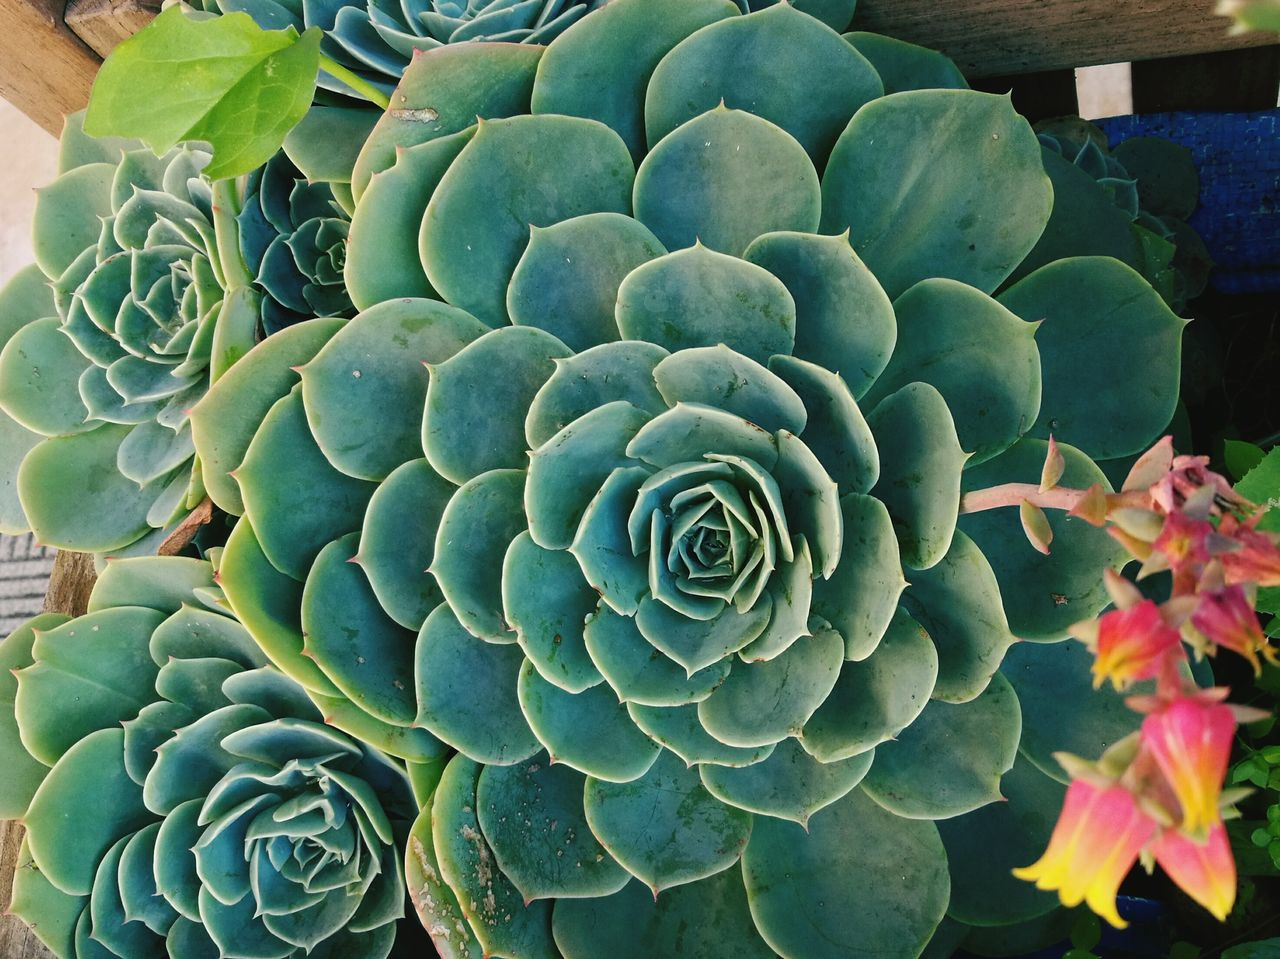 Plant Nature No People Beauty In Nature Flower Cactus Growth Leaf Grasse Crassula Fragility Close-up Outdoors Day Freshness